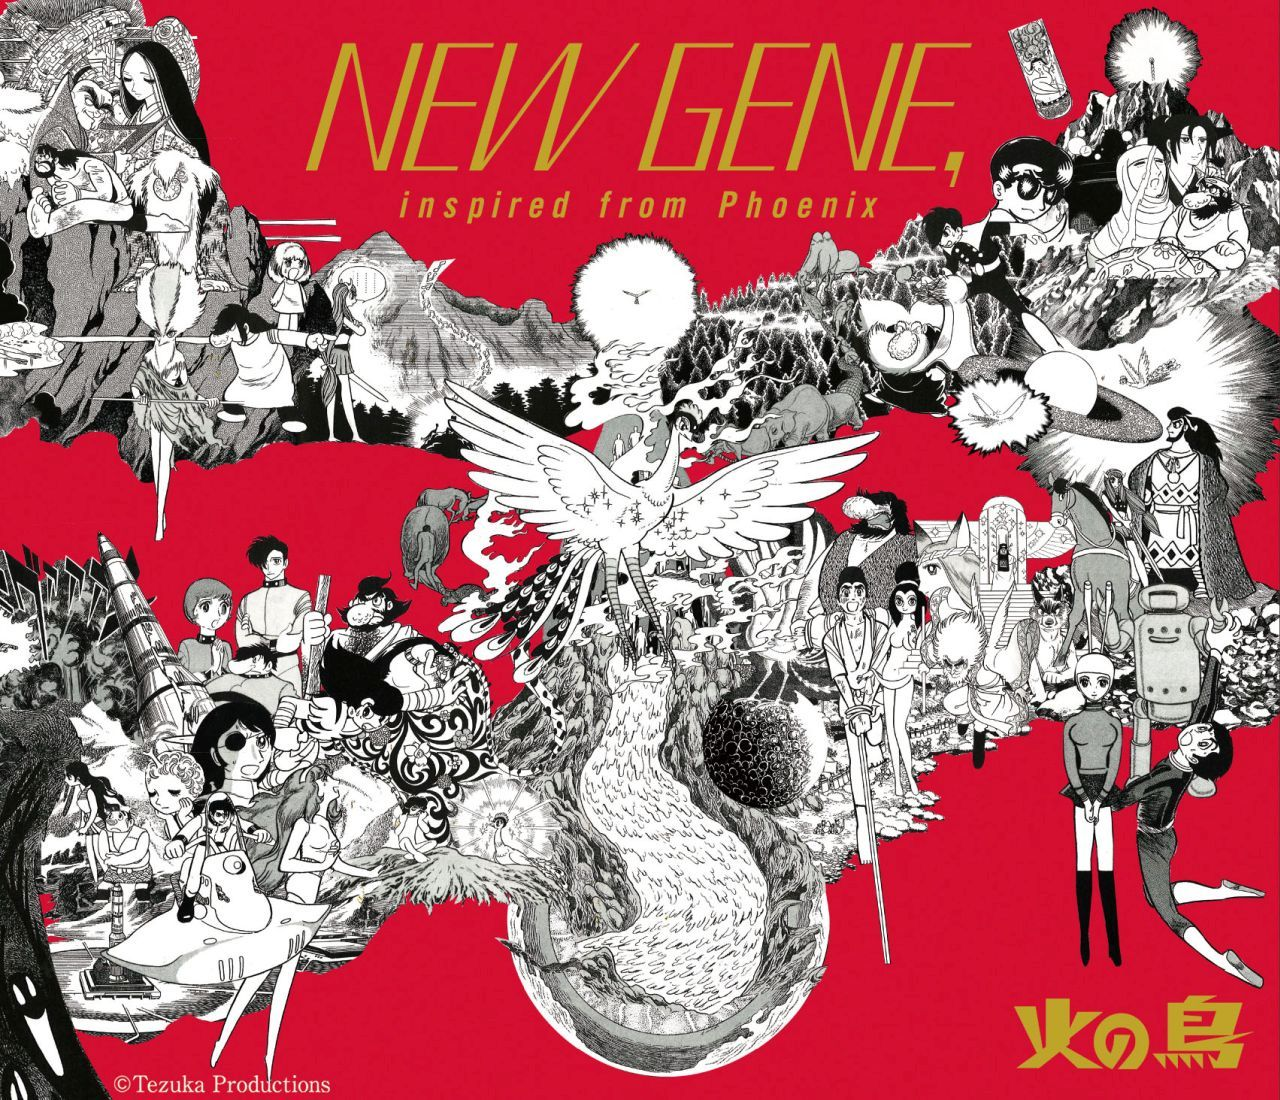 手塚治虫生誕90周年記念 火の鳥 COMPILATION ALBUM 『NEW GENE, inspired from Phoenix』画像